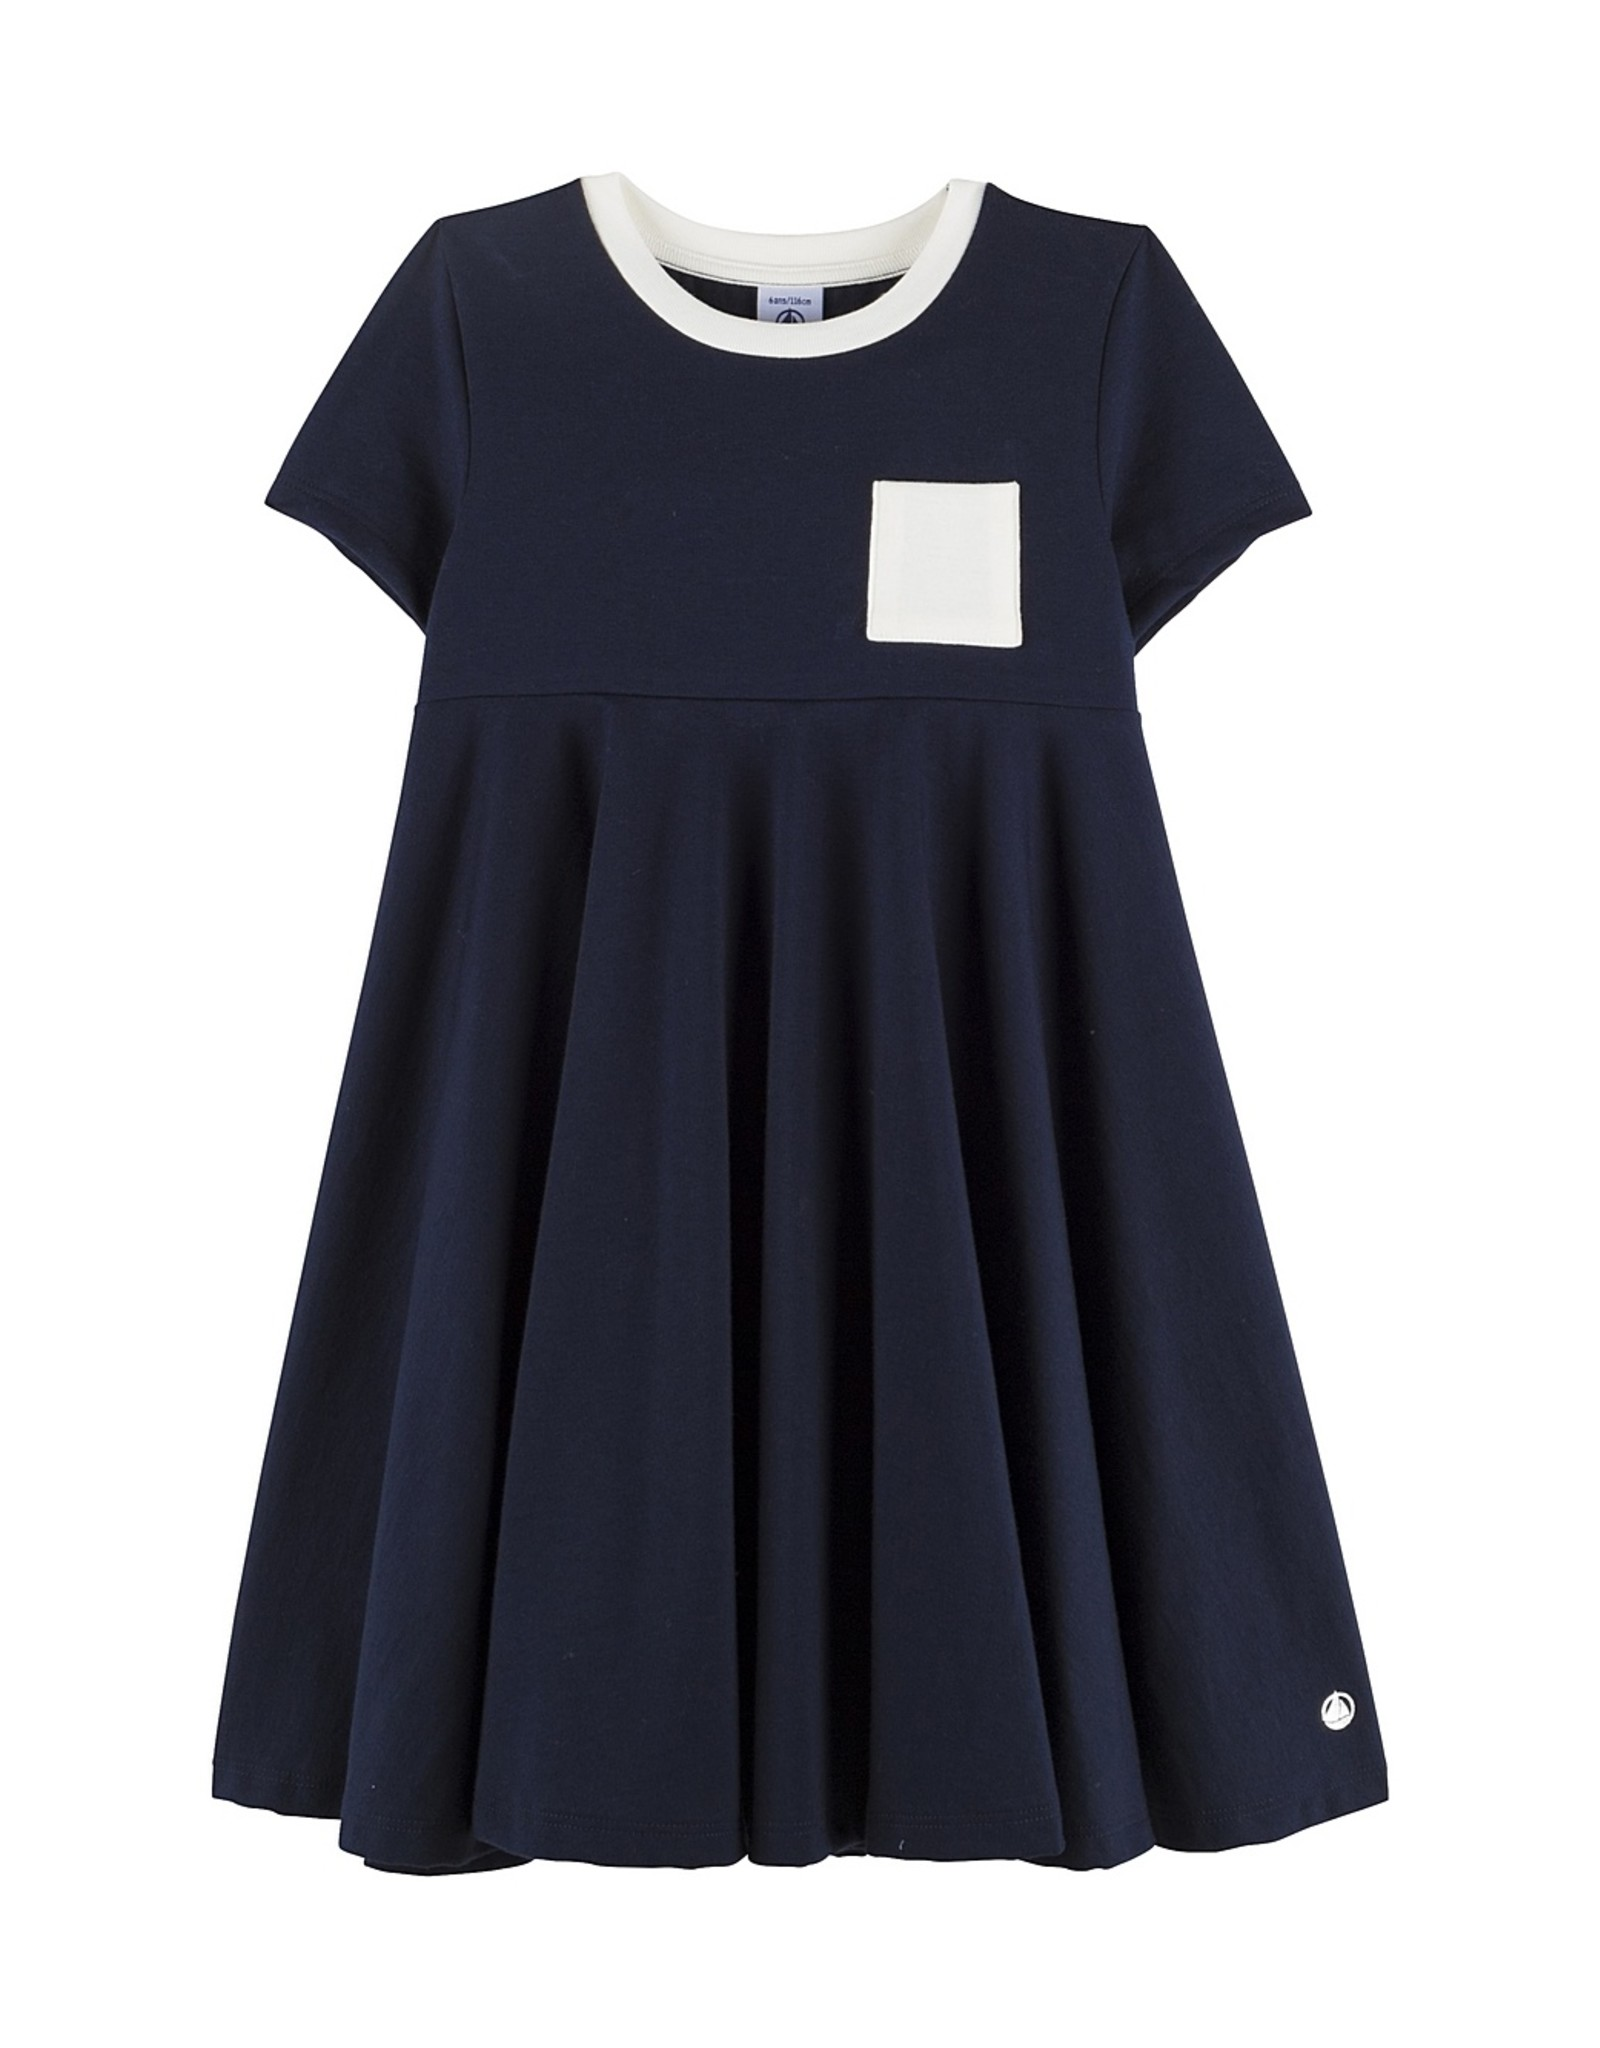 Petit Bateau Petit Bateau Girl Mall SS Dress w Pocket